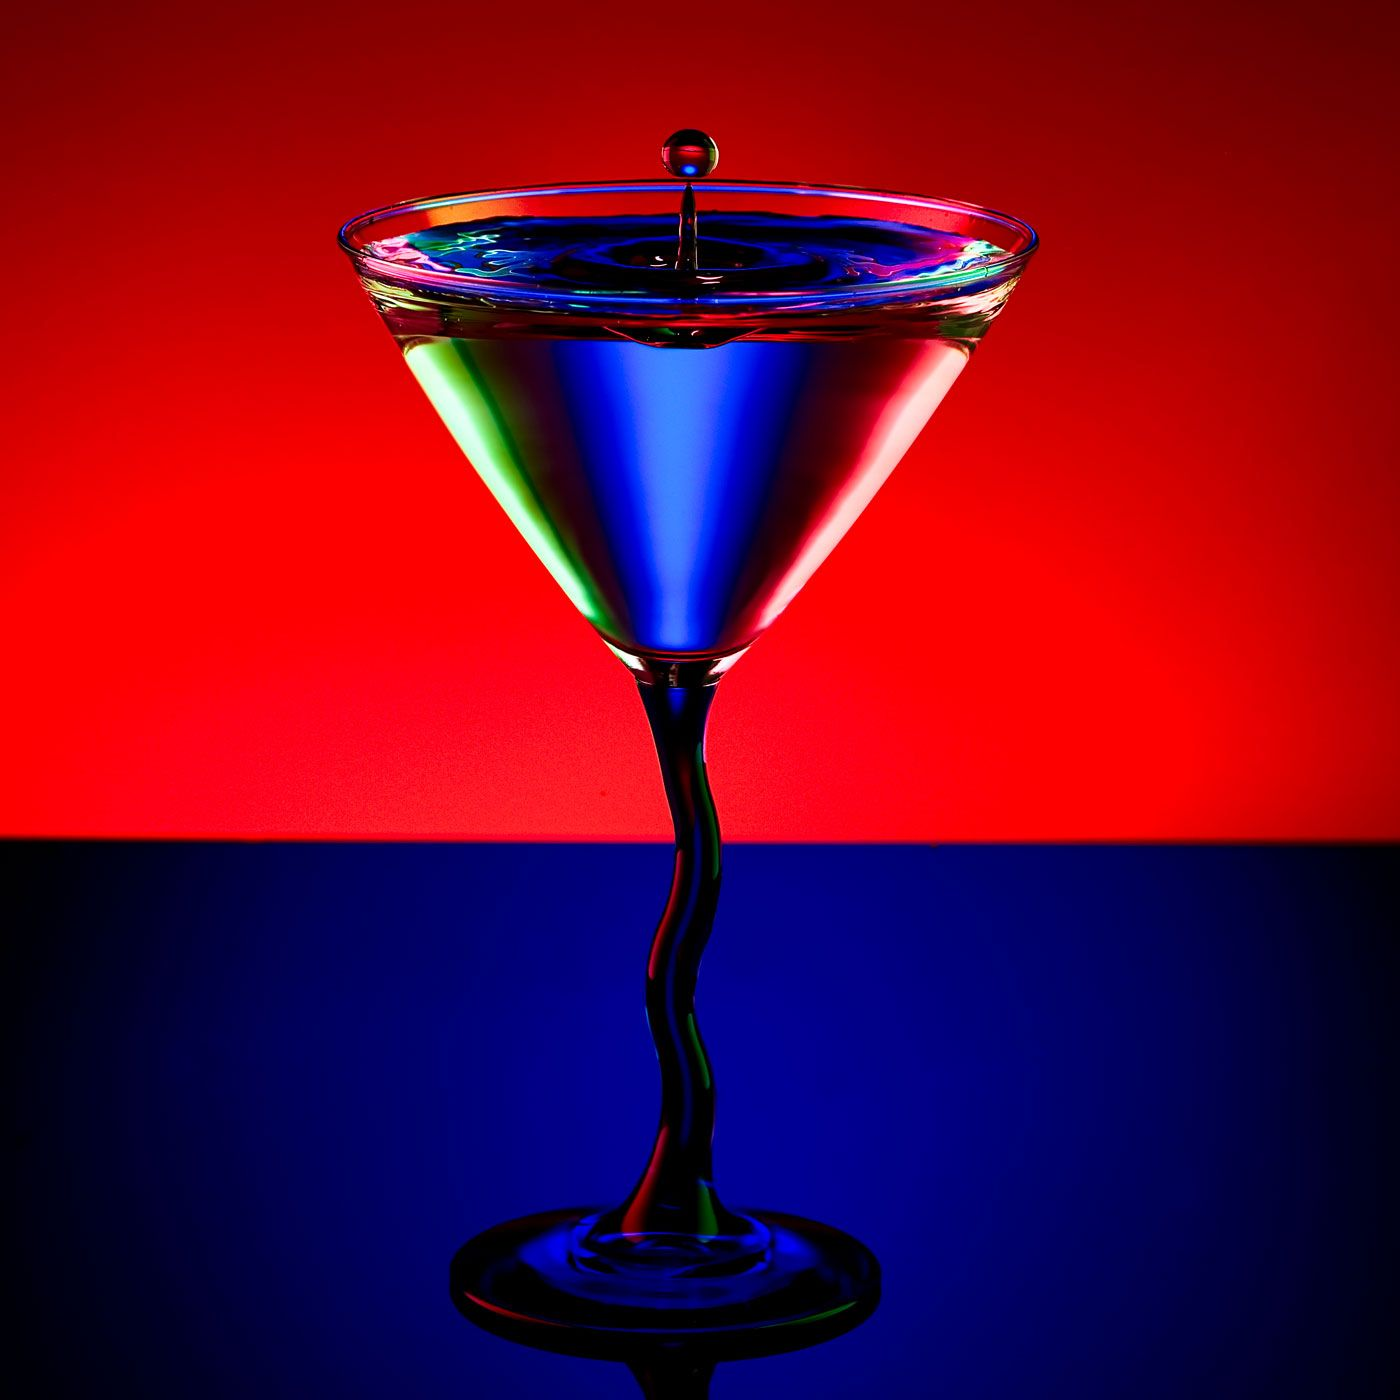 The Perfect Drop Red And Blue Colored Glass Wine And Spirits